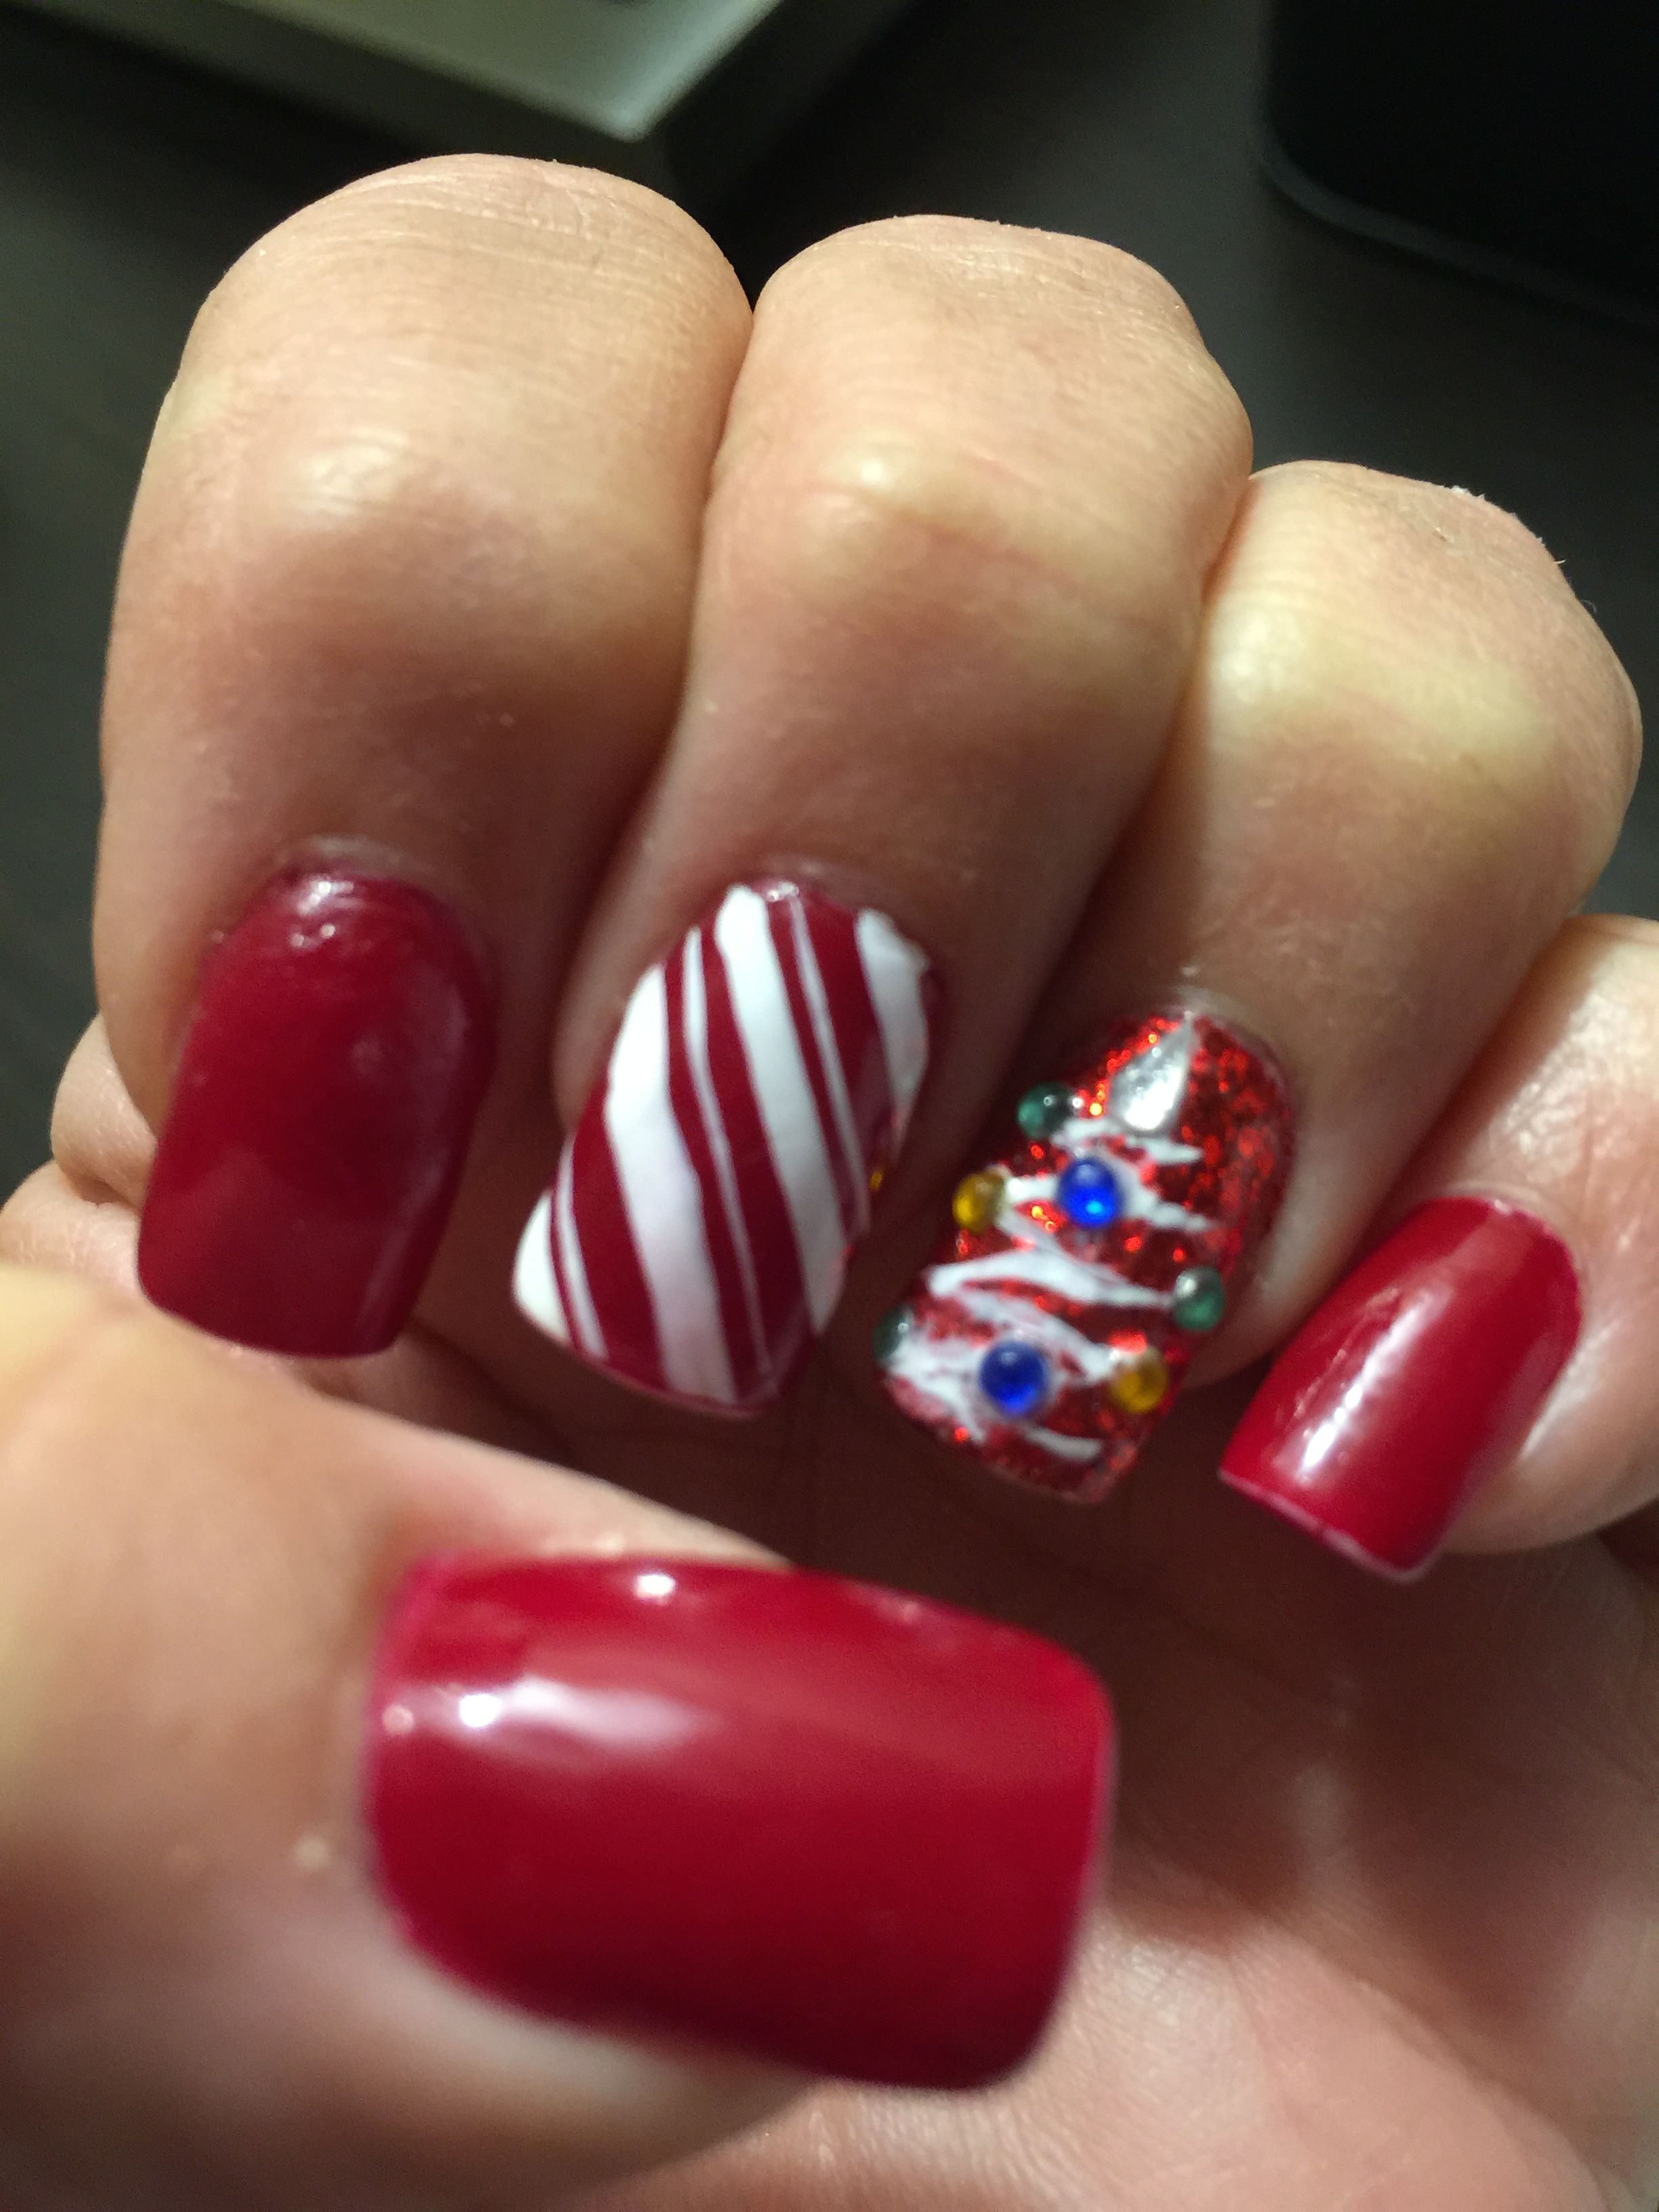 Merry Christmas jolly nail art | Fun Beachy Nails (and Holidays too ...